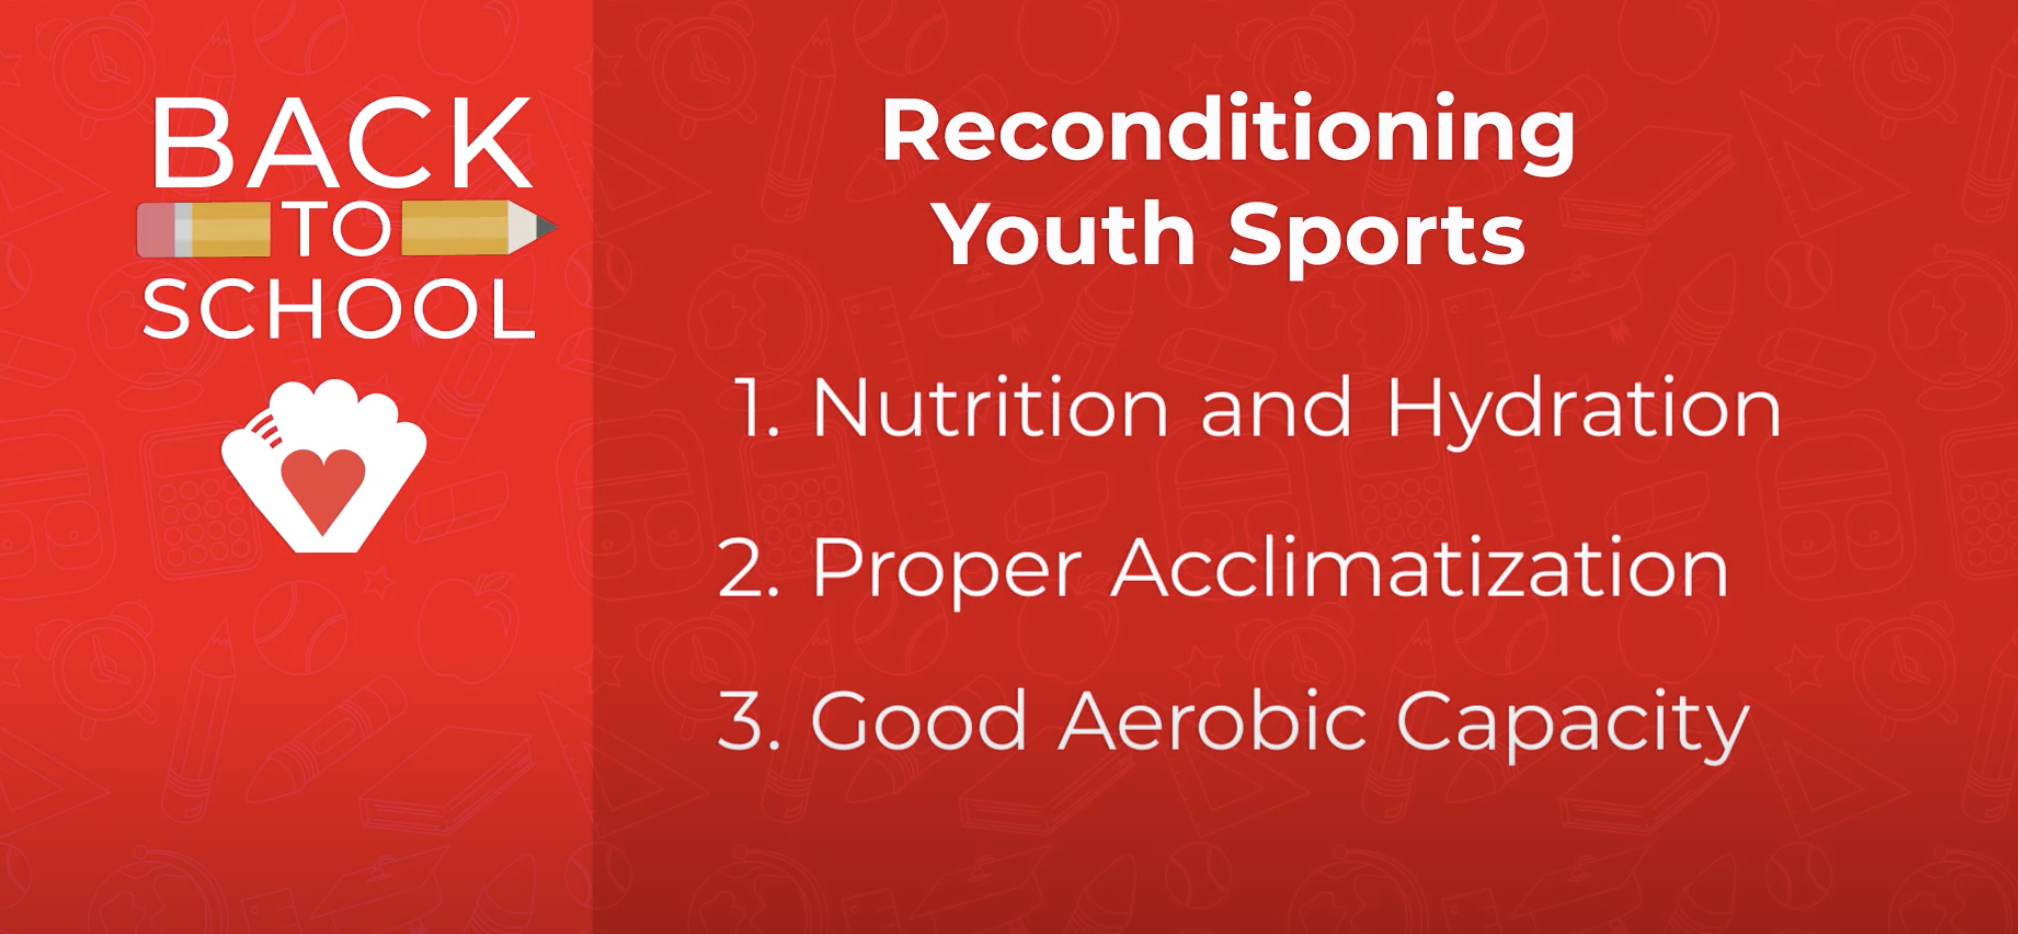 reconditioning youth sports thumbnail